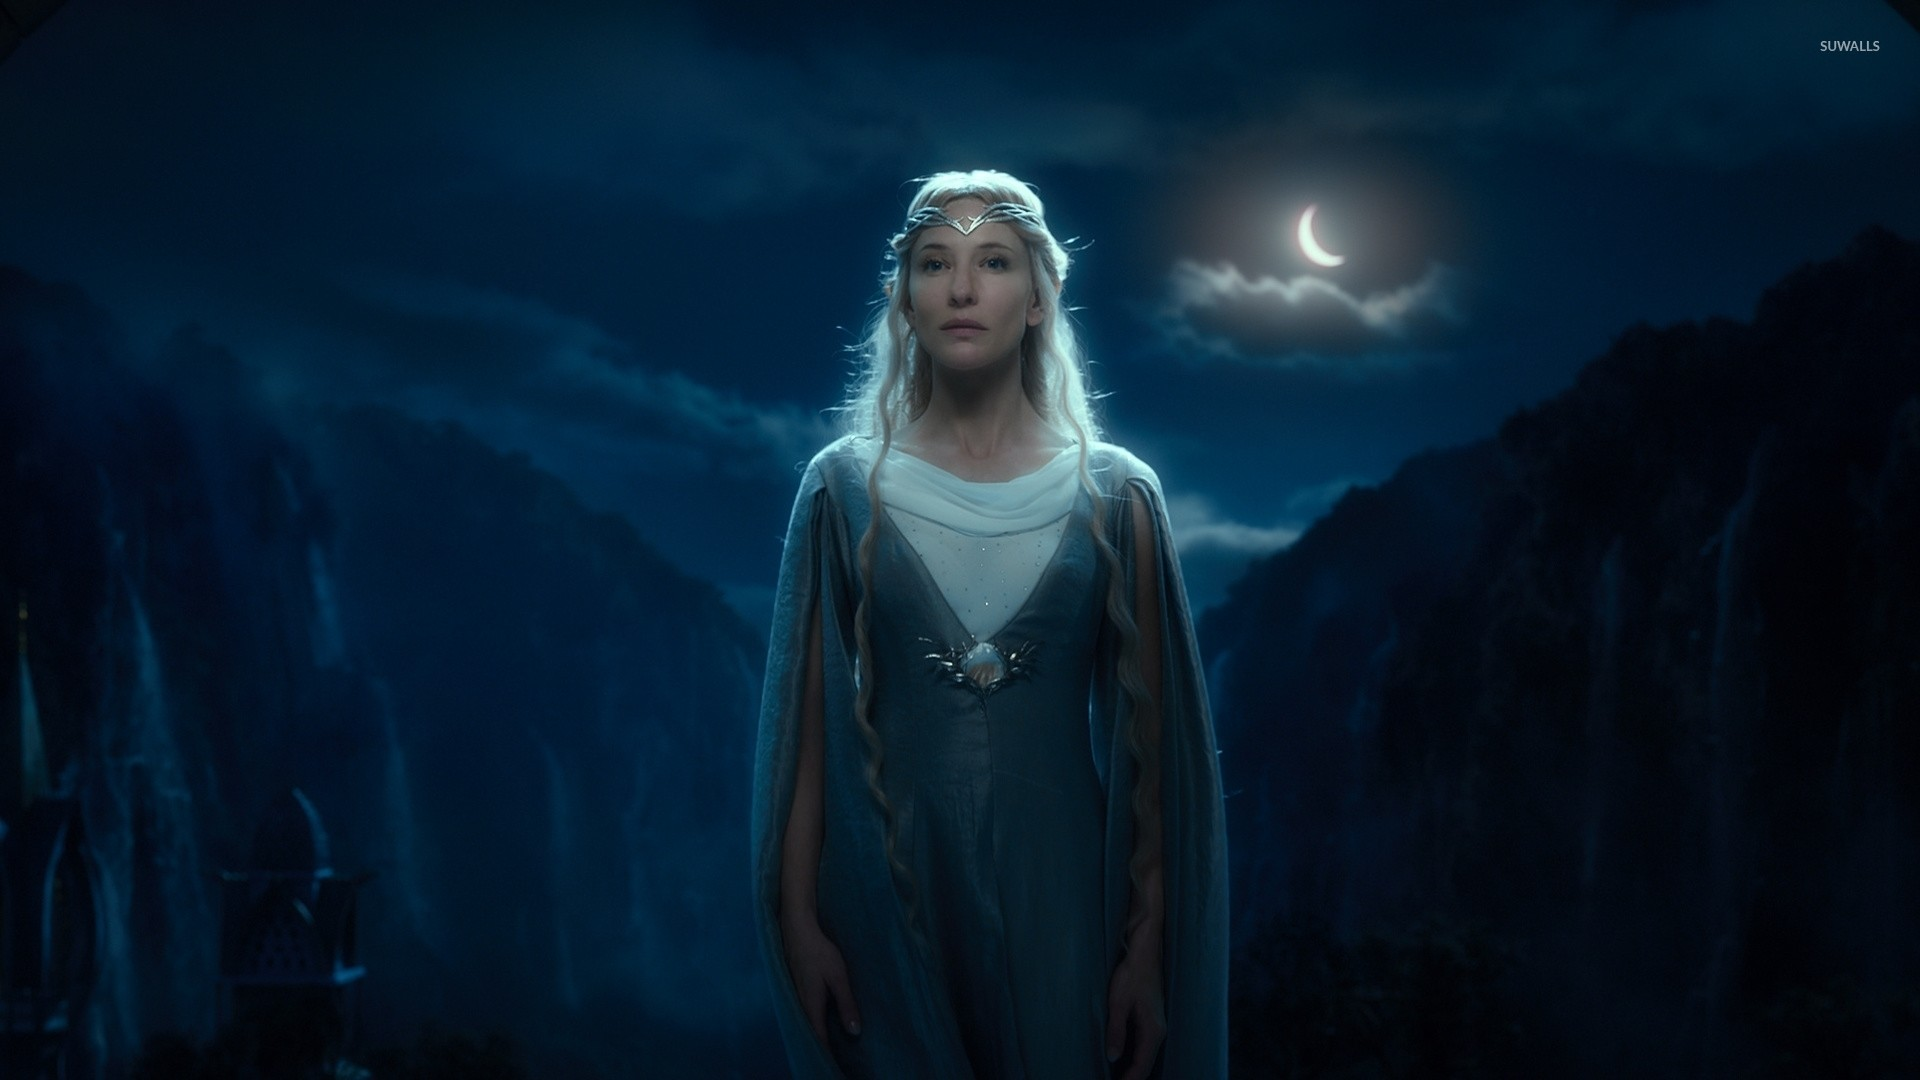 galadriel wallpaper (70+ pictures)